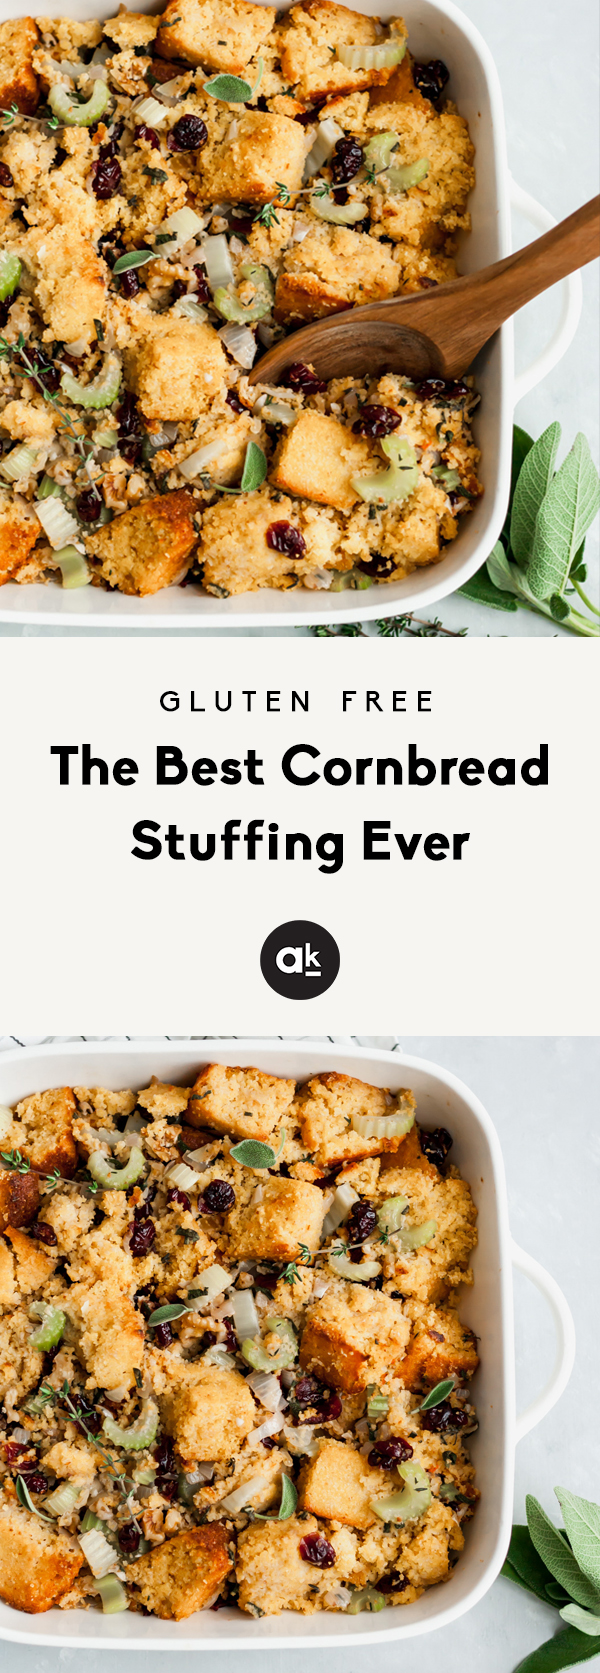 BEST STUFFING EVER! This cornbread stuffing is a healthier, gluten free take on a Thanksgiving classic stuffing! With bites of sweetness from dried cranberries, crunchy walnuts and incredible flavors from thyme and sage.